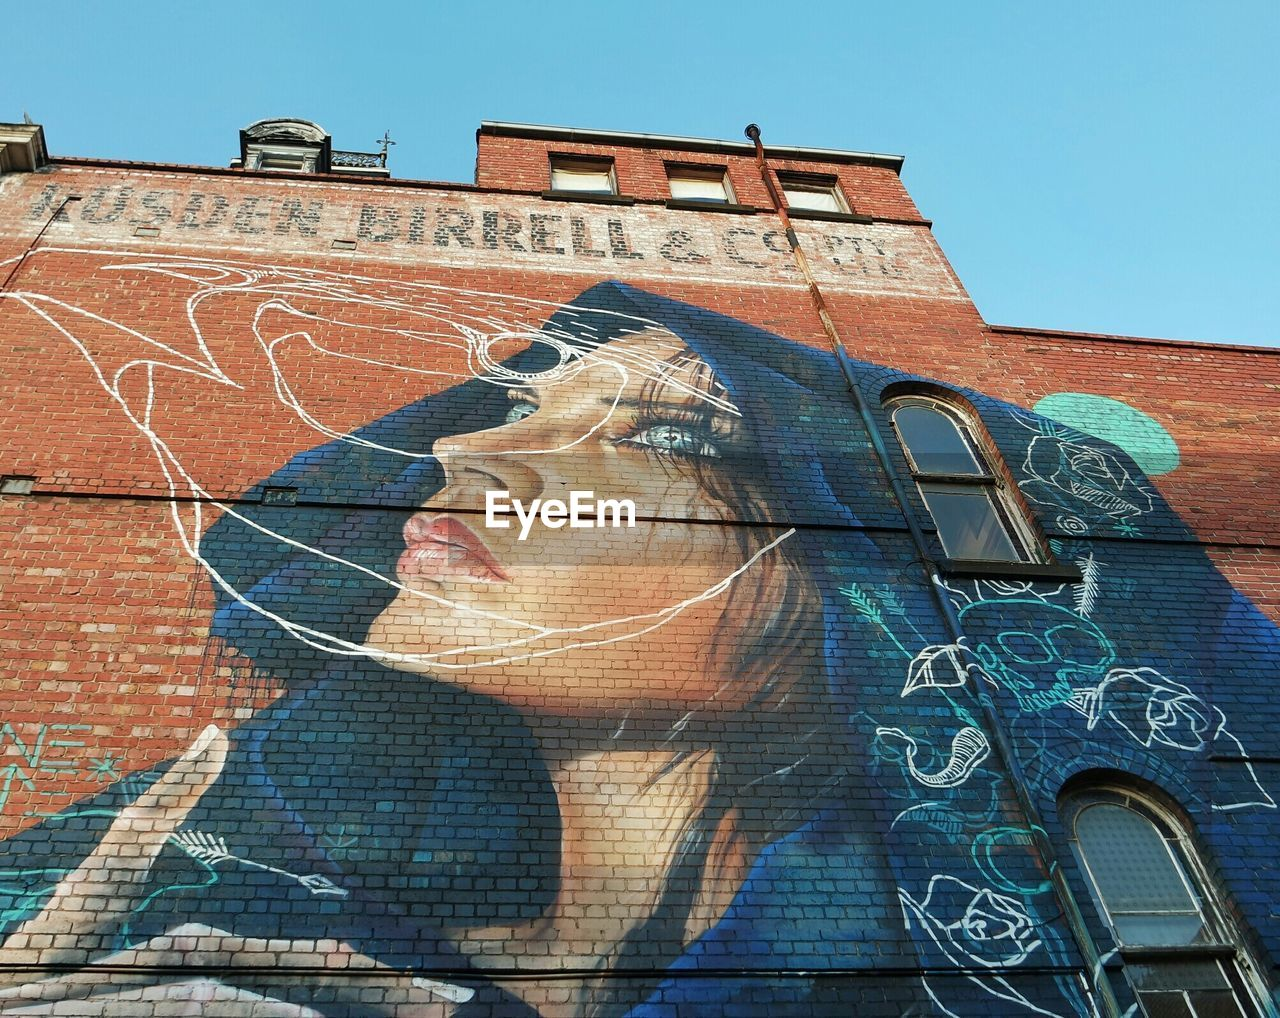 Low angle view of mural on building against sky